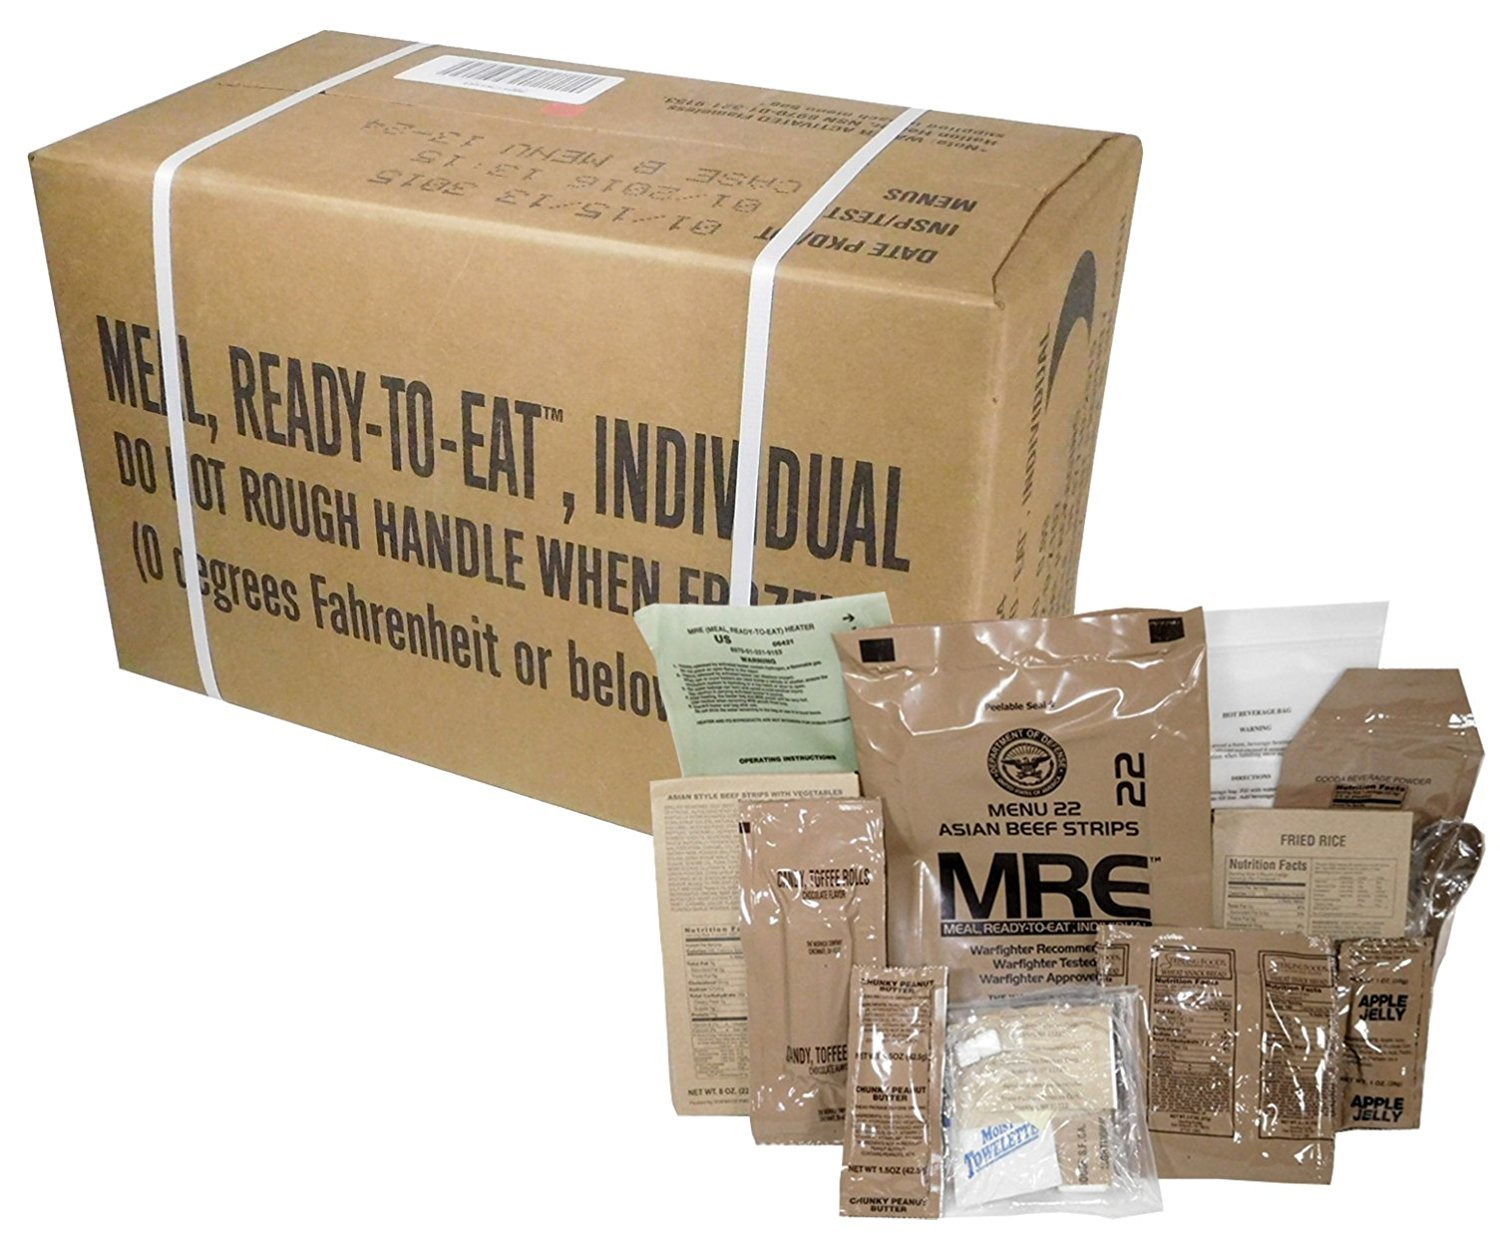 MRE 2020 Inspection Date Case, 24 Meals with 2020 Inspection Date, 2017 Pack Date A and B Case. Military Surplus Meal Ready to Eat. by Ozark Outdoorz, LLC (Image #4)